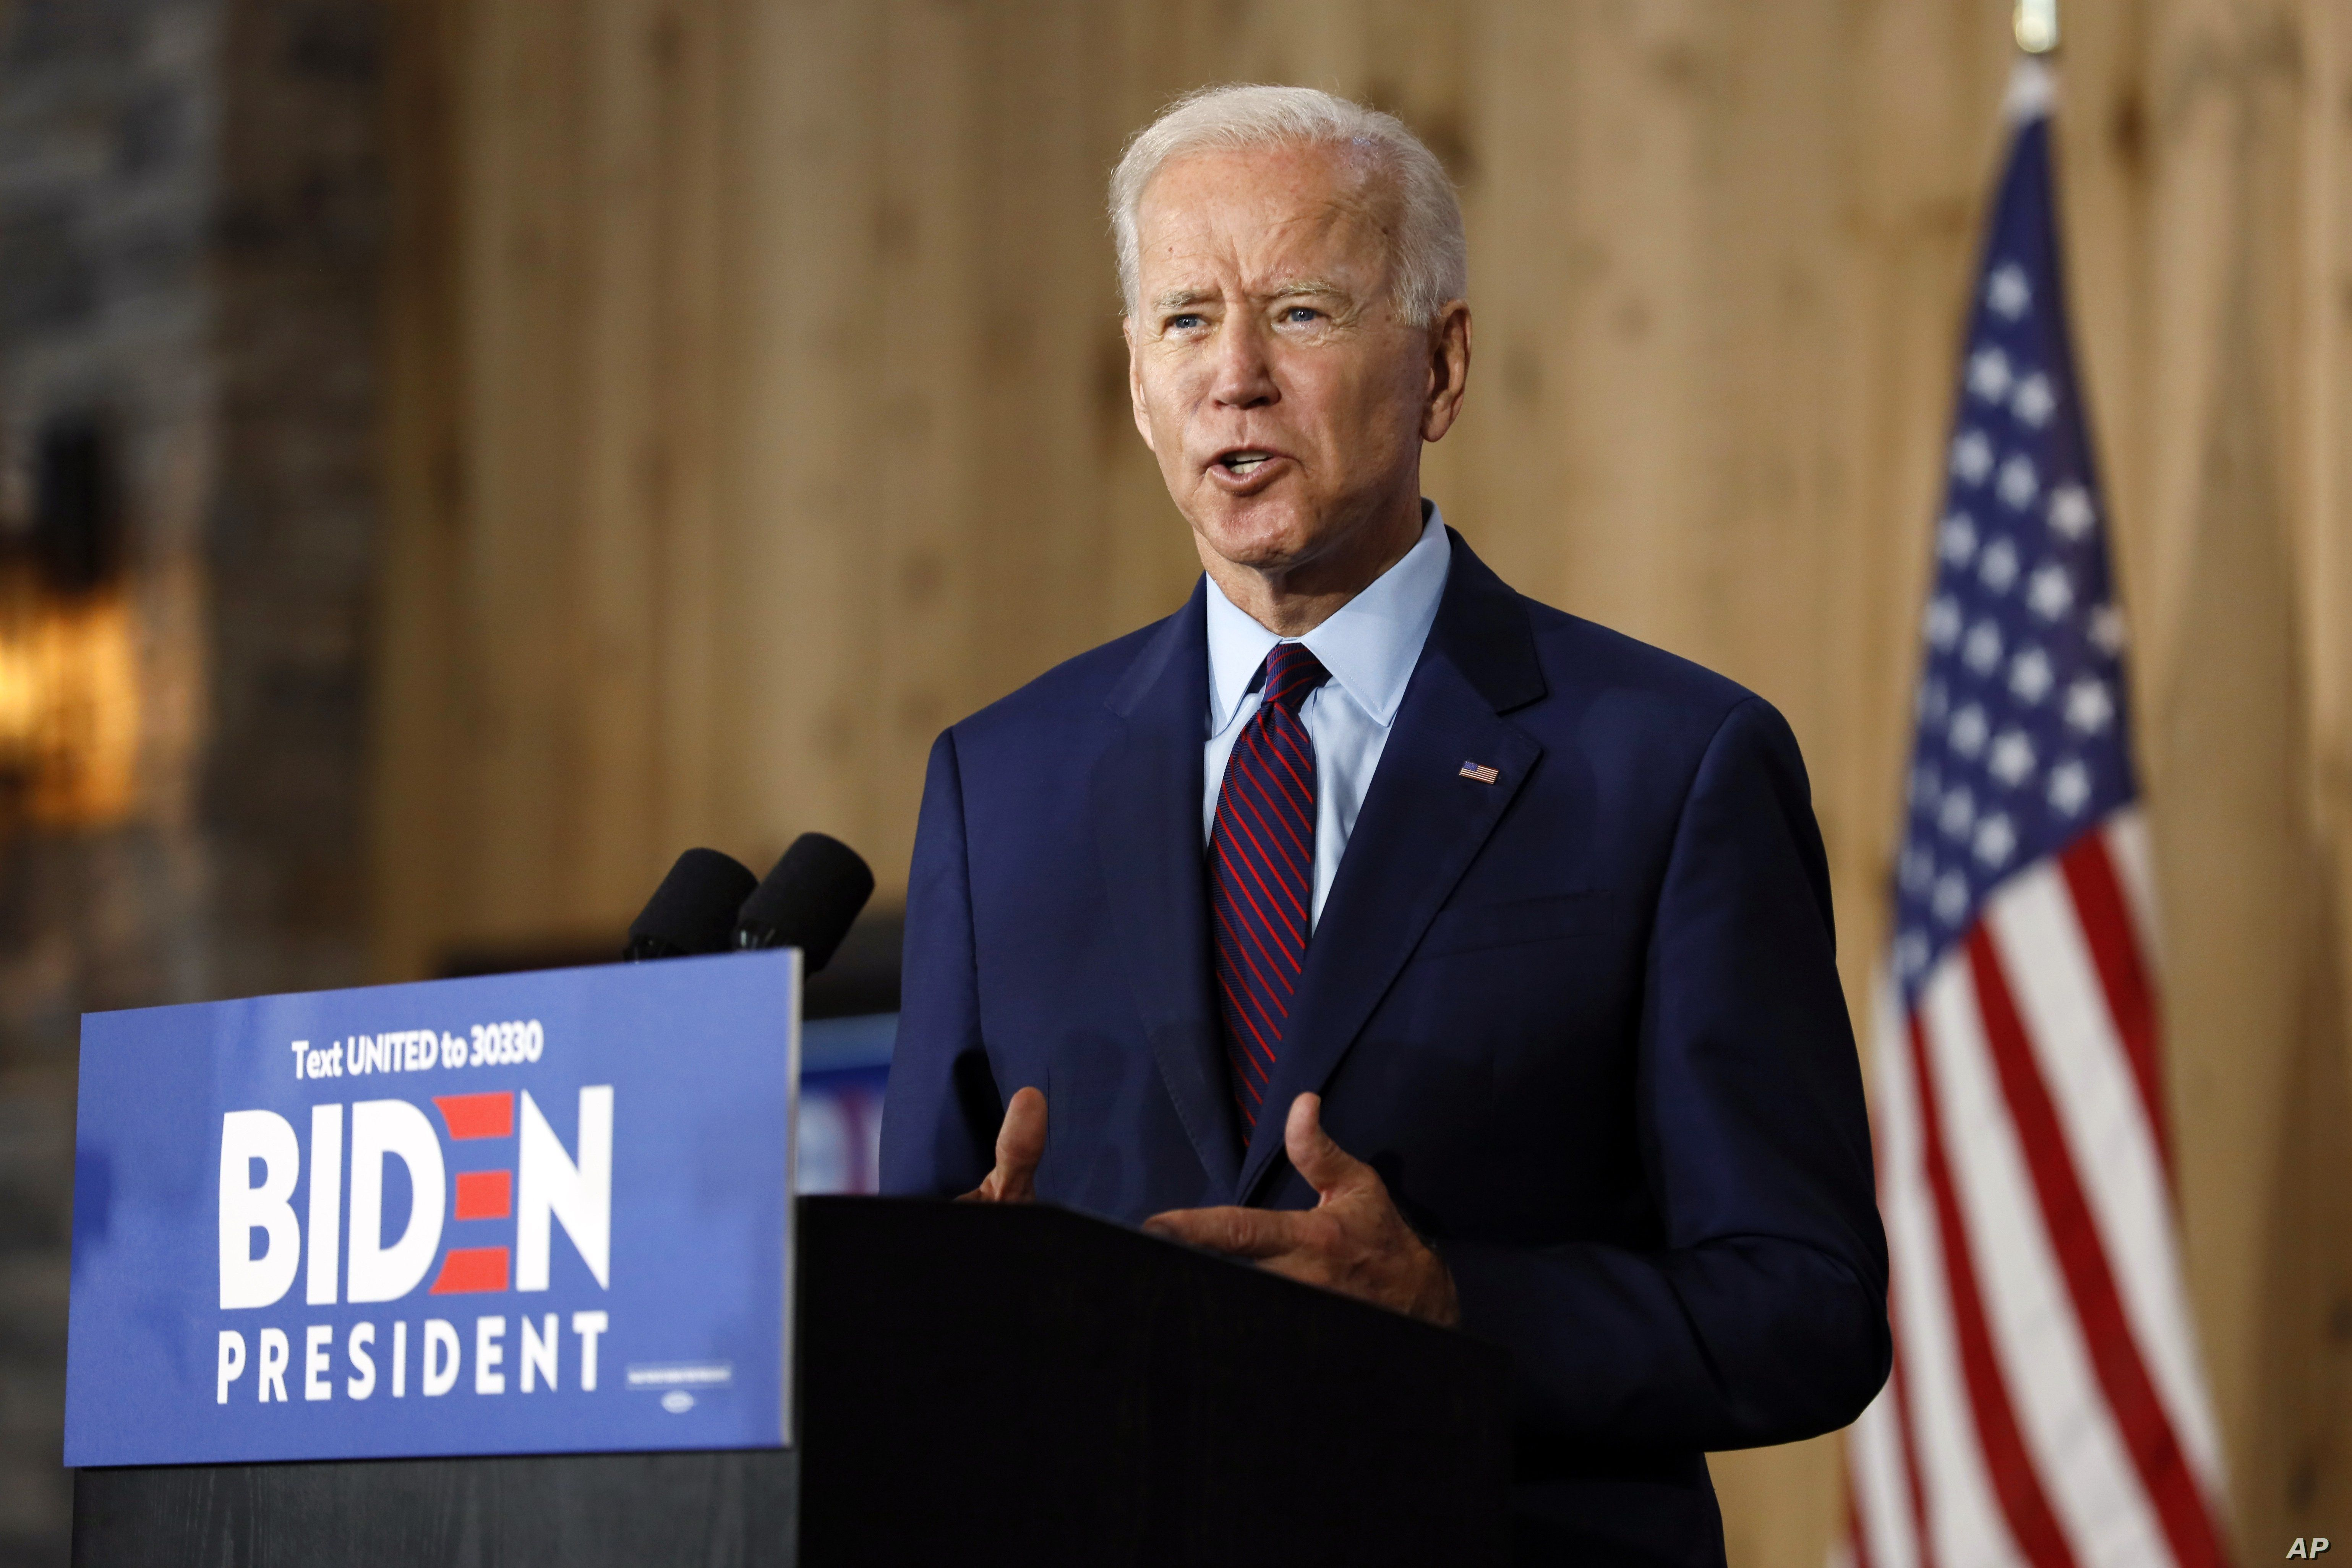 Democratic presidential candidate former Vice President Joe Biden speaks to local residents during a community event, Wednesday, Aug. 7, 2019, in Burlington, Iowa. (AP Photo/Charlie Neibergall)